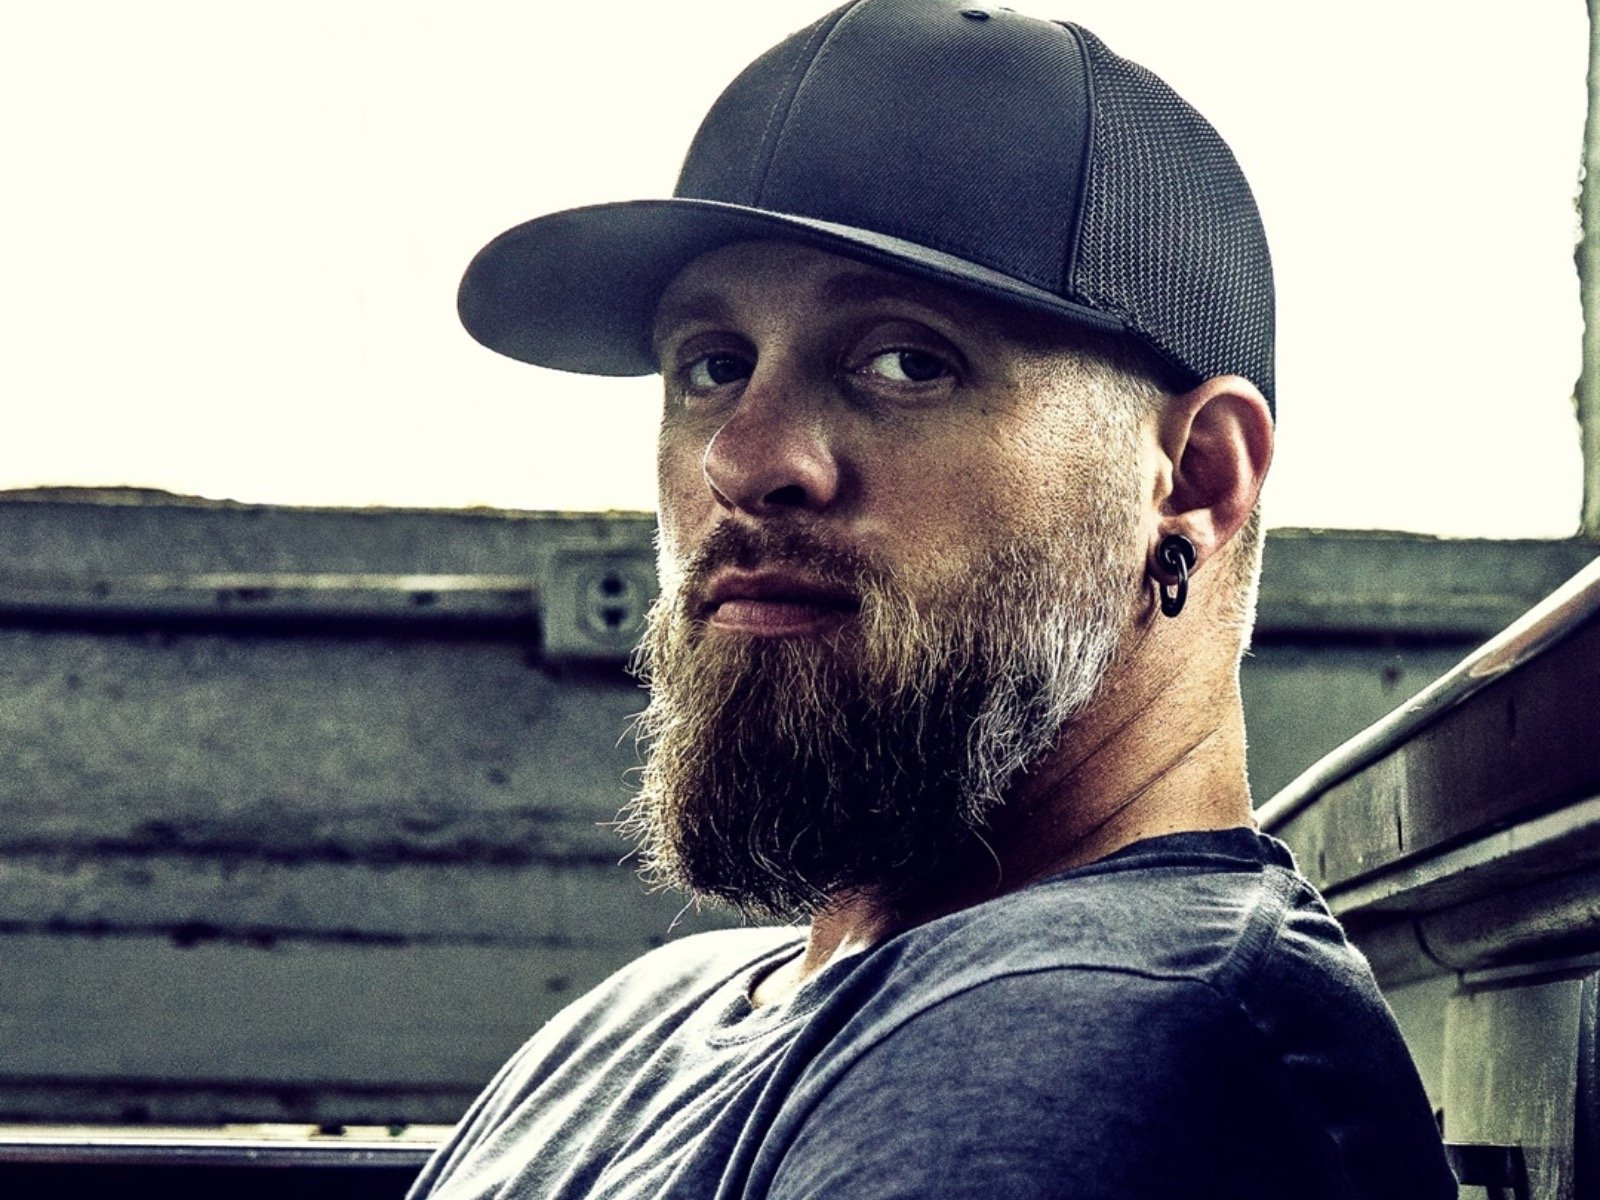 Country star Brantley Gilbert will perform at Fiserv Forum